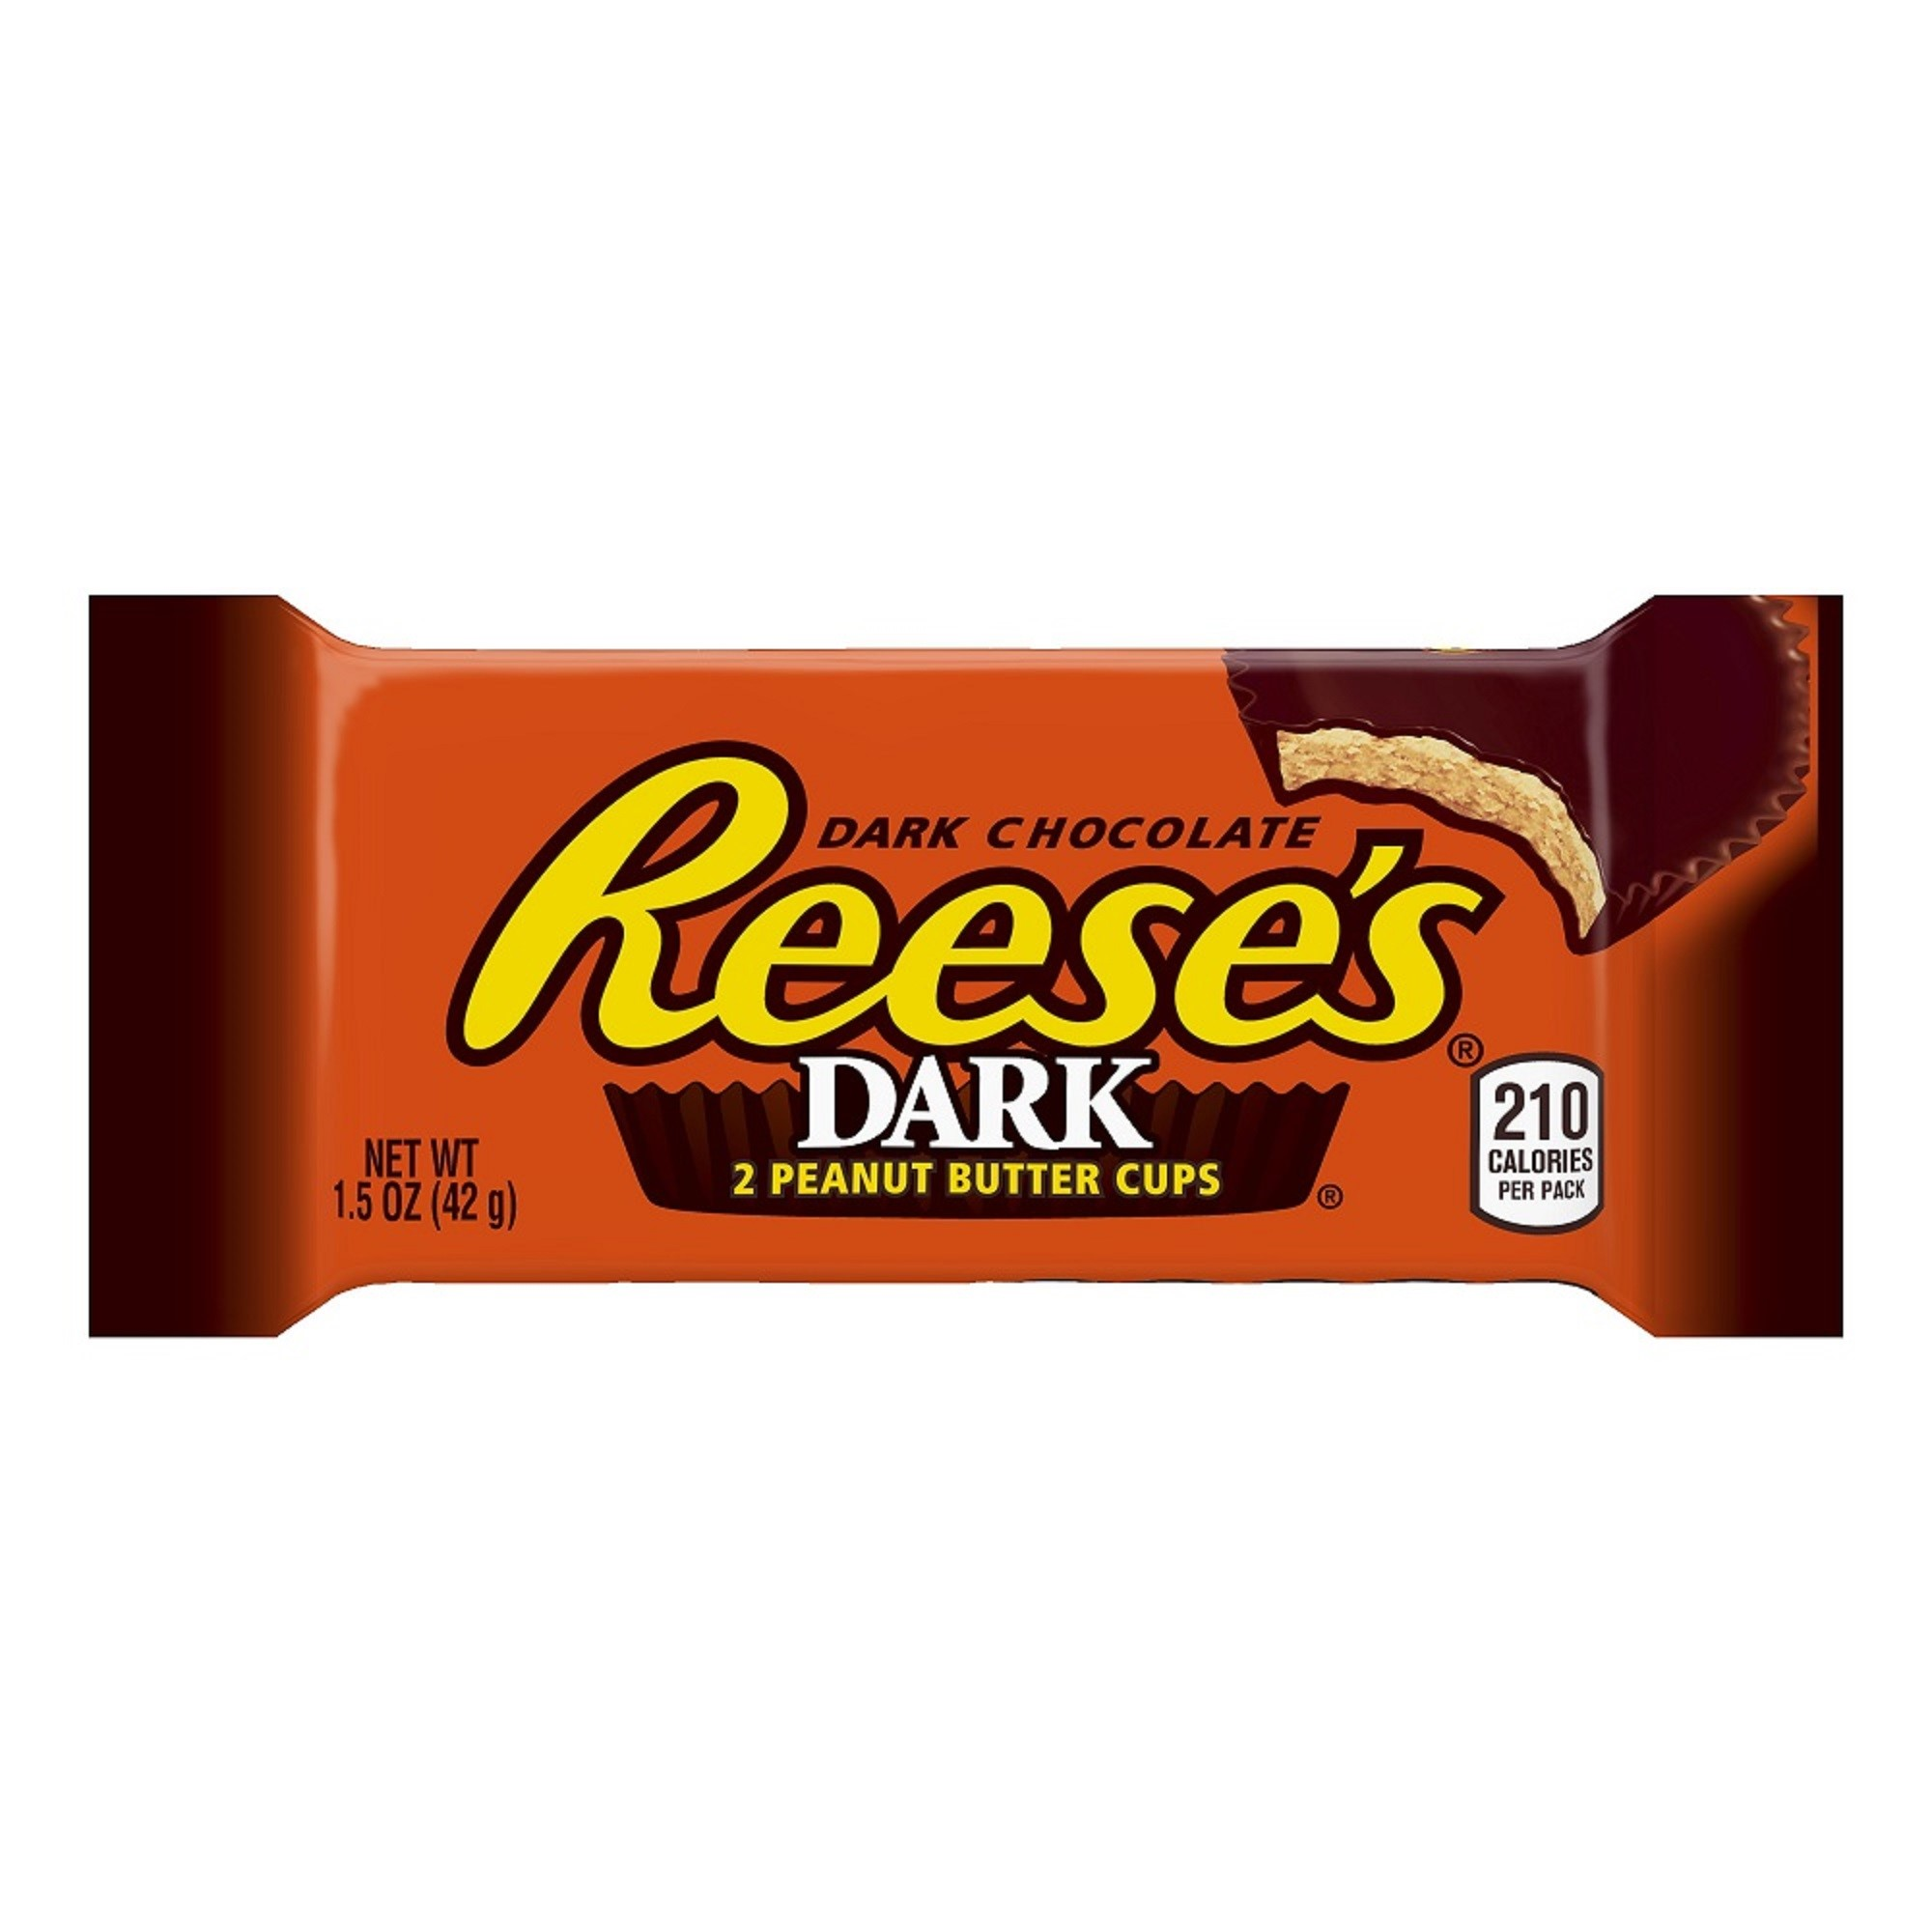 Reese's Peanut Butter Cups, Dark Chocolate, 1.5 Oz